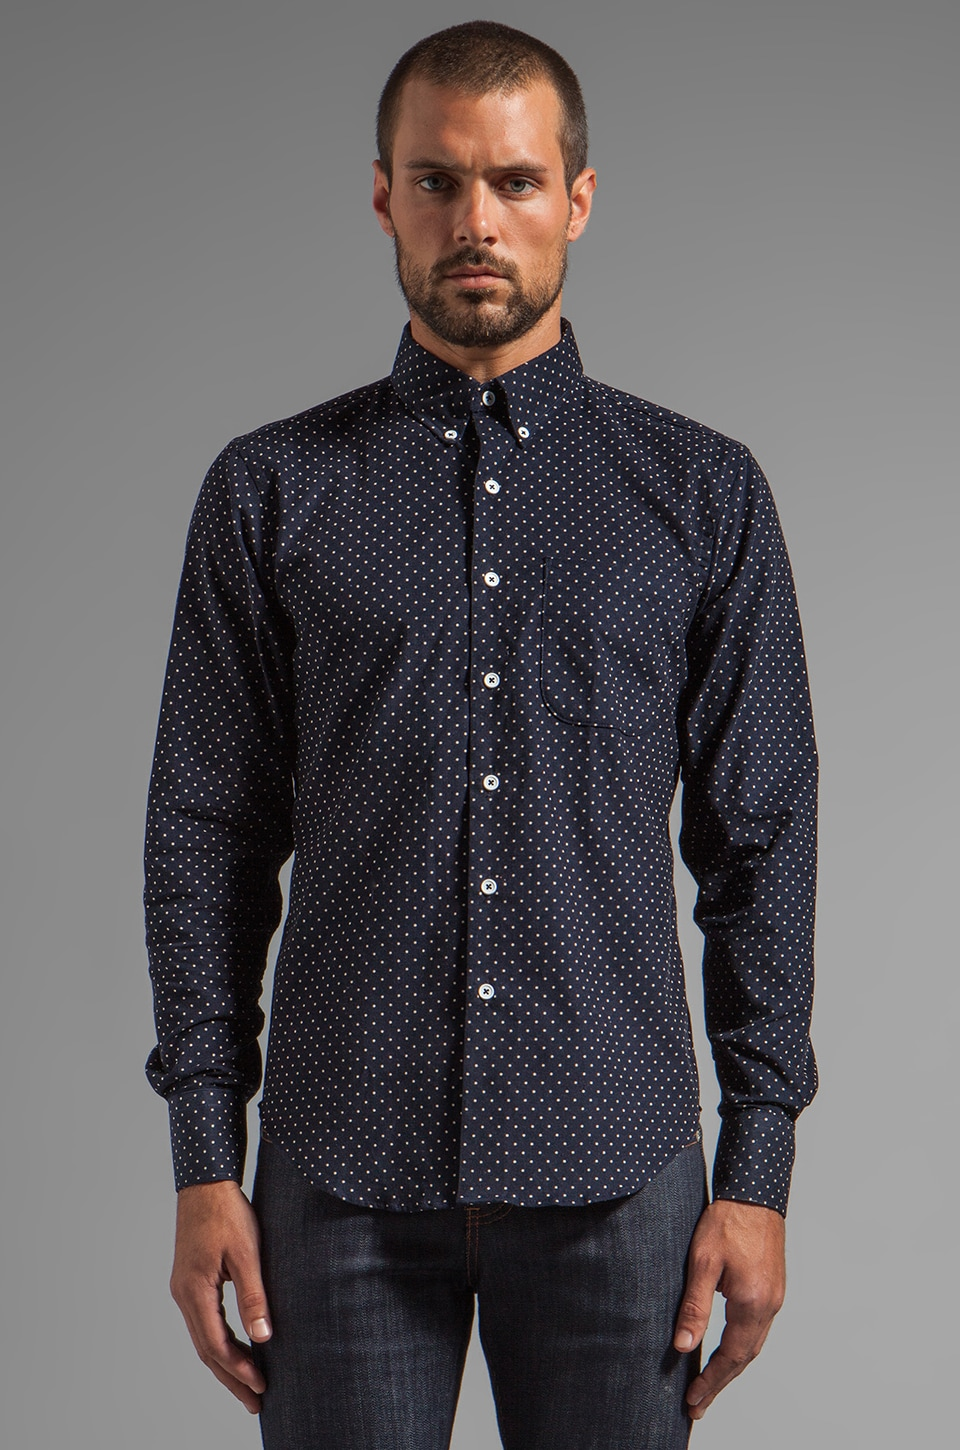 Naked & Famous Denim Regular Shirt Indigo Cord w/ White Dots in Indigo